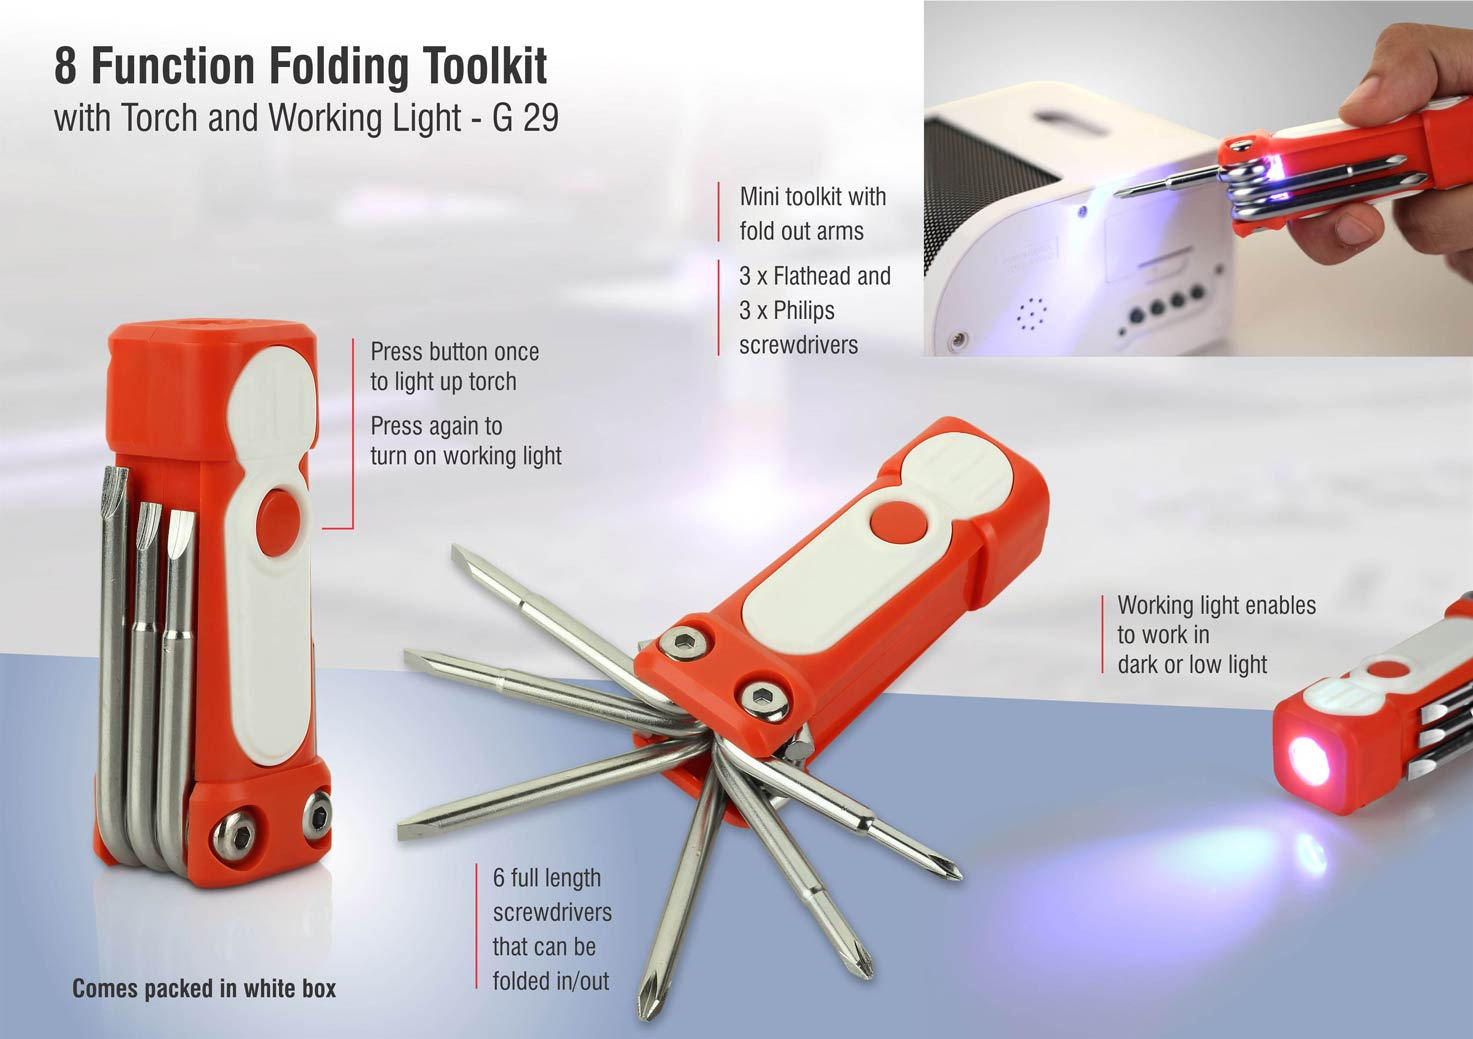 G29 - 8 function folding toolkit with torch and working light